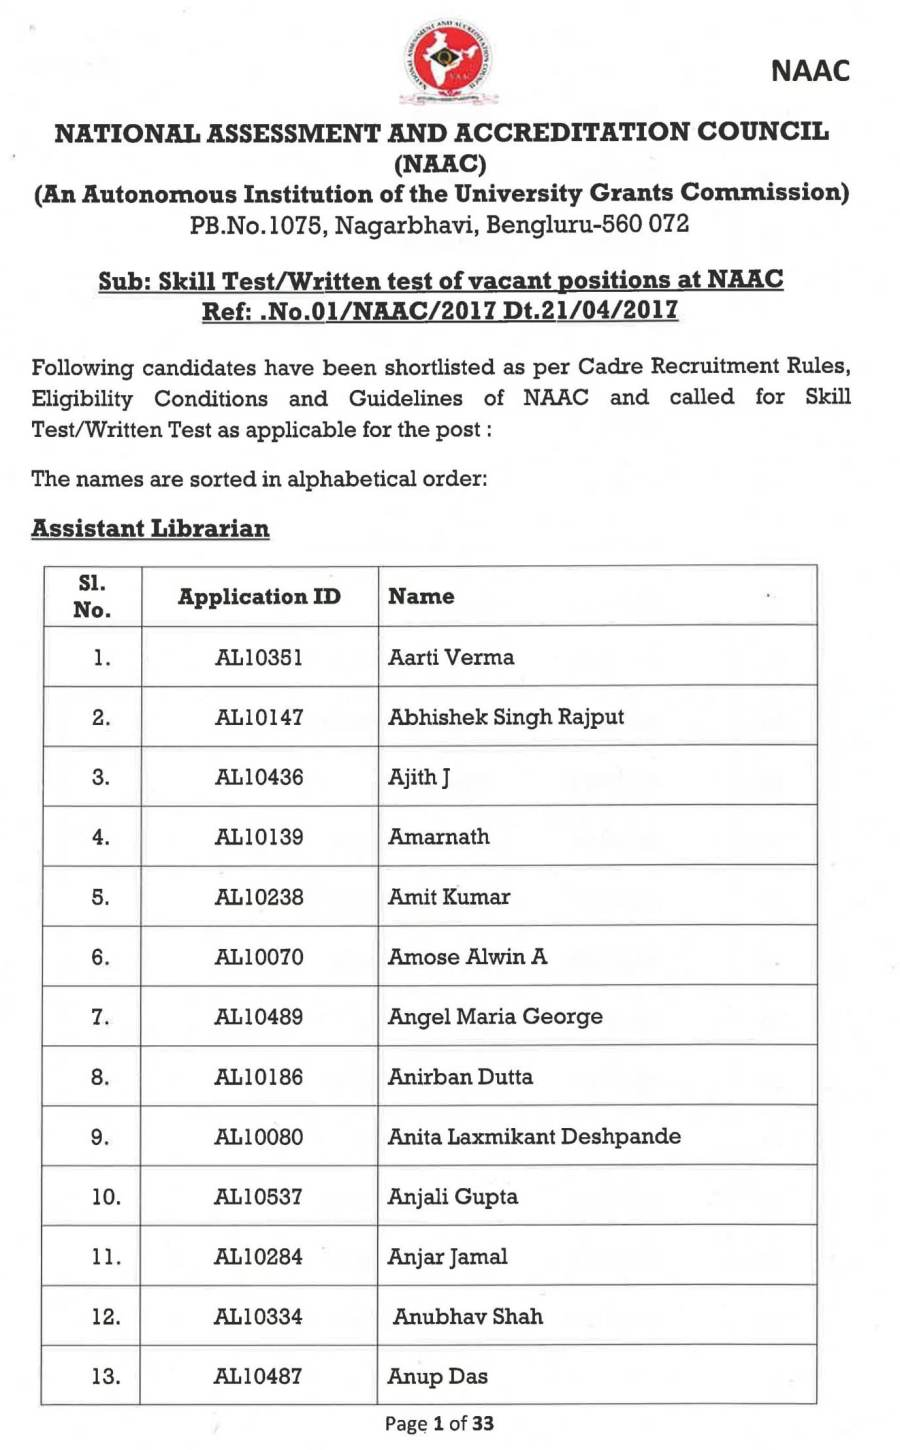 List of Shortlisted Candidates Eligible for Skill/Written